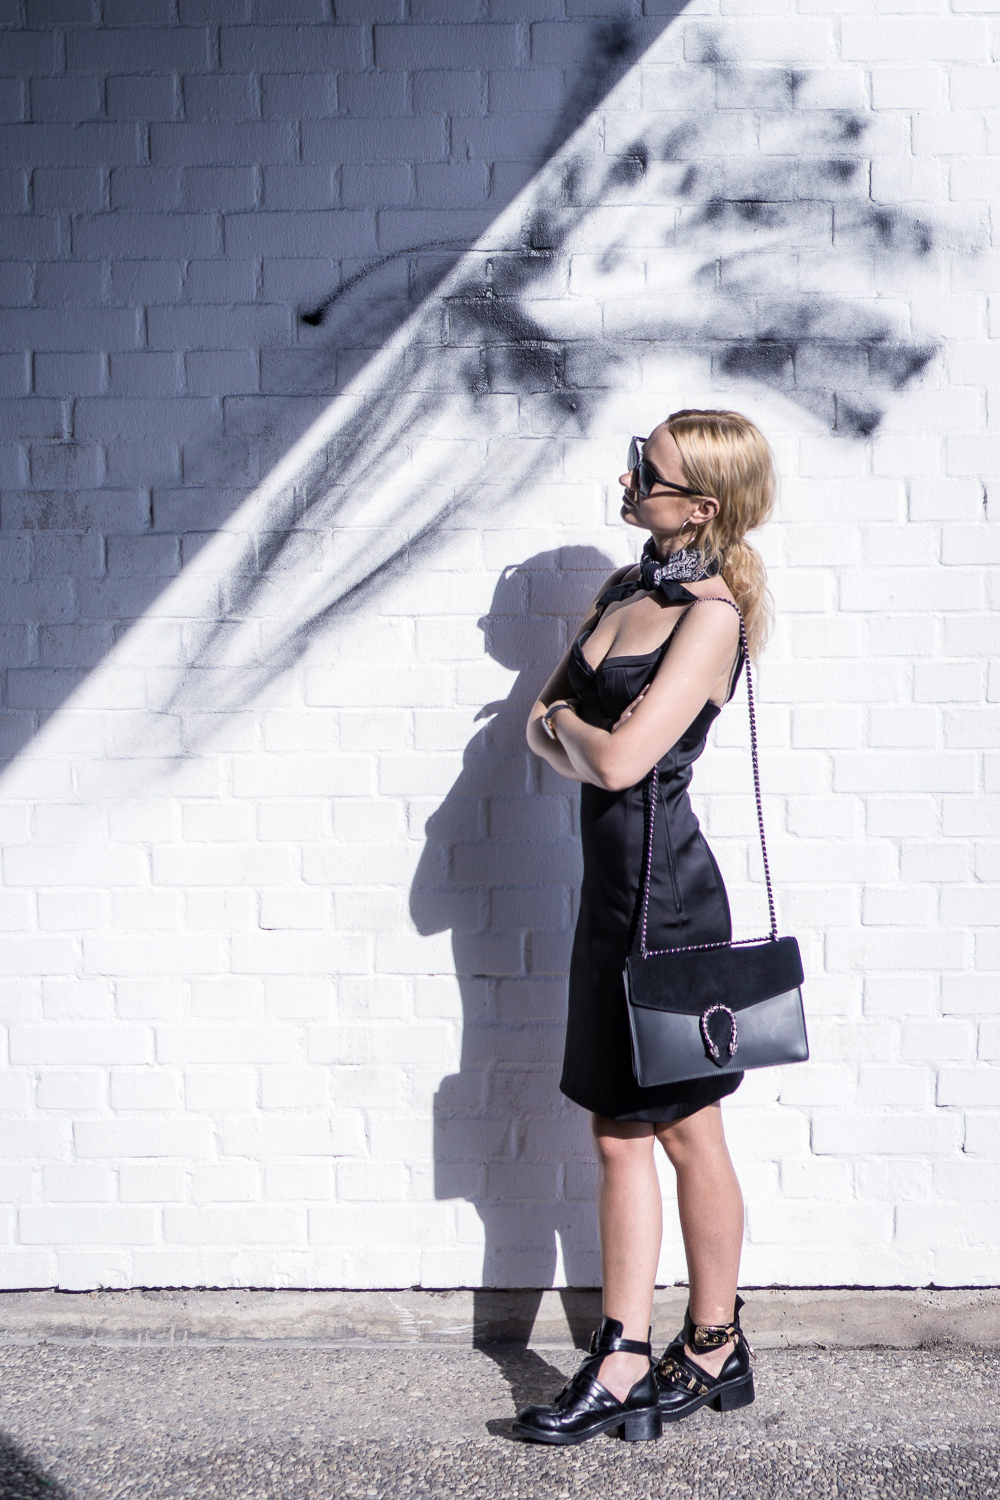 black dress hm balenciaga boots blonde bloger street style ootd fashion outfit tumblr girl summer fashion